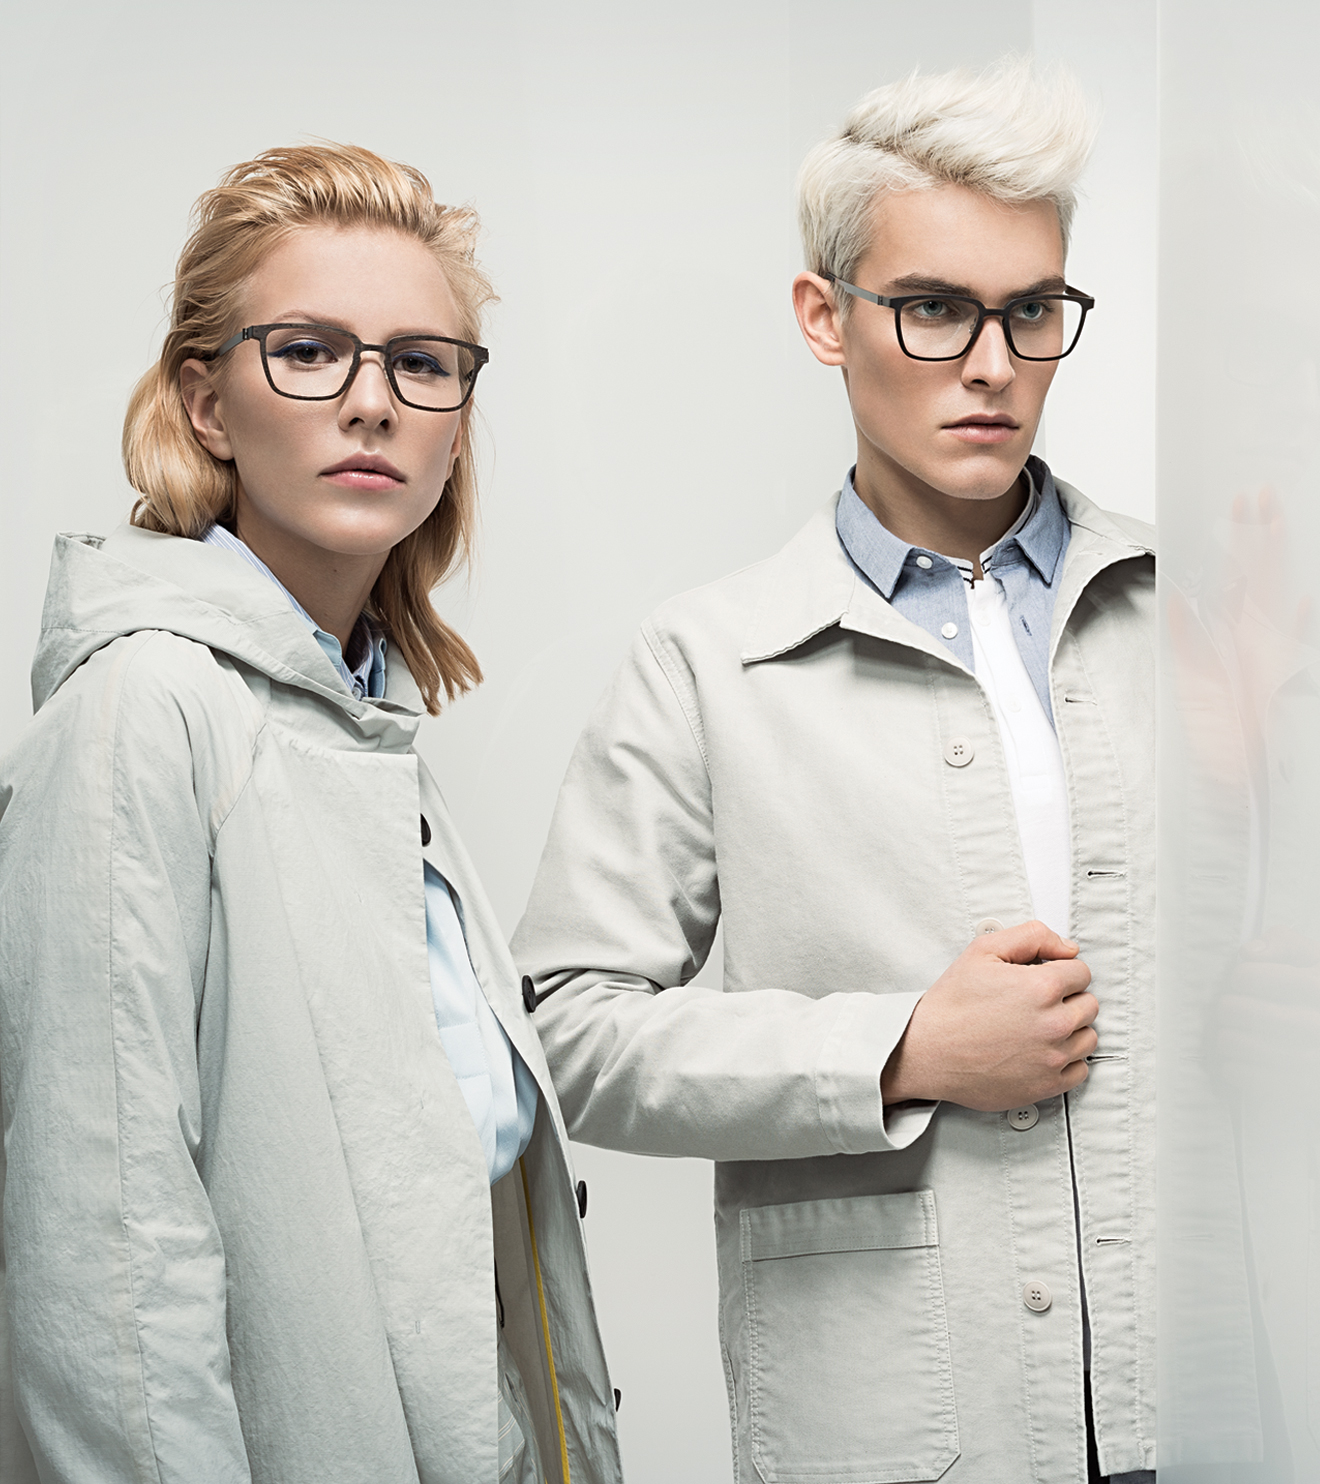 LINDBERG in a contrasting avant-garde DANSK fashion shoot